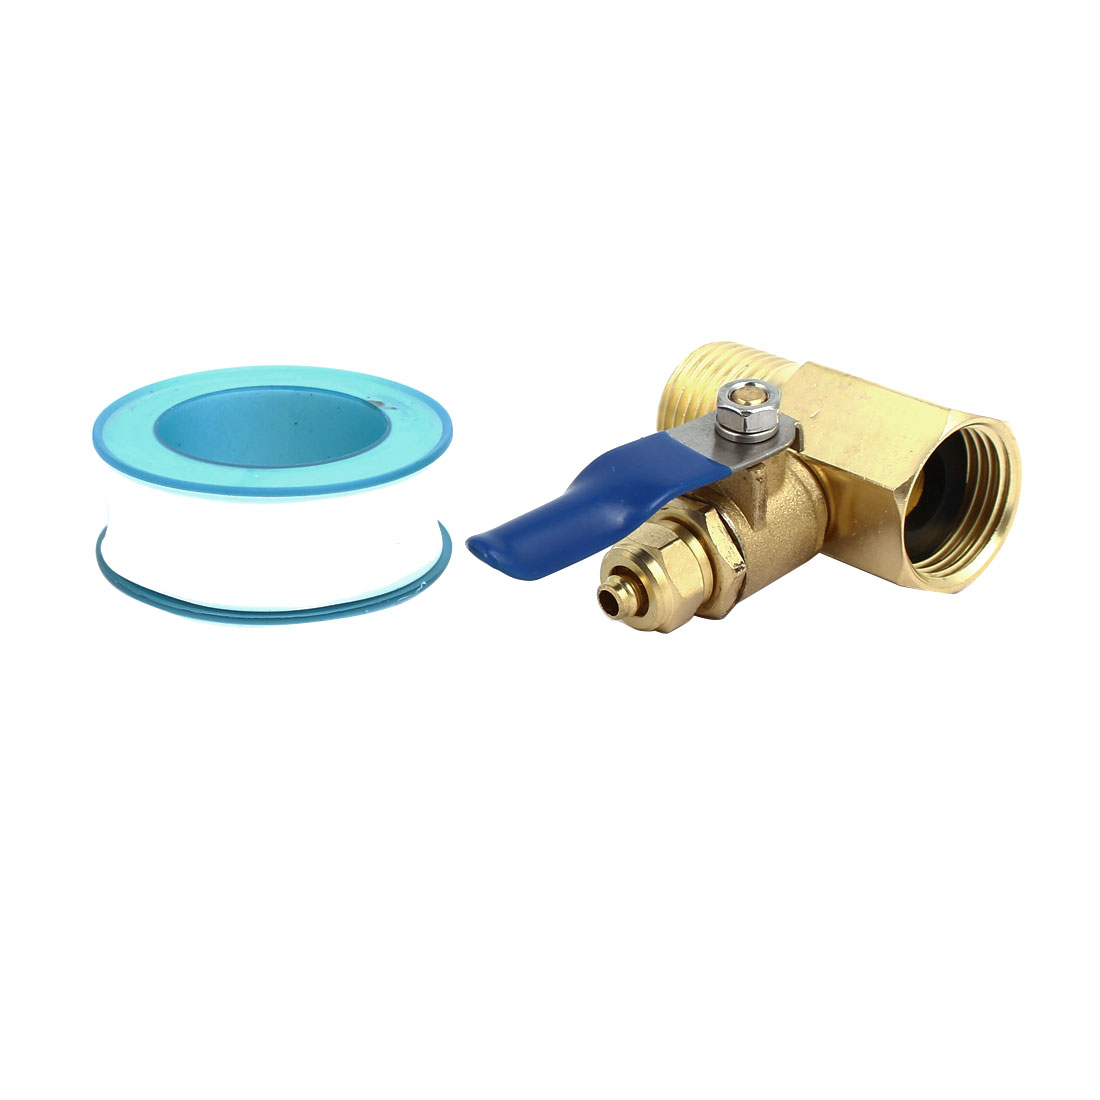 1/4BSP 3-Way Filter Ball Valve Faucet Tap Brass Tone for RO Water System